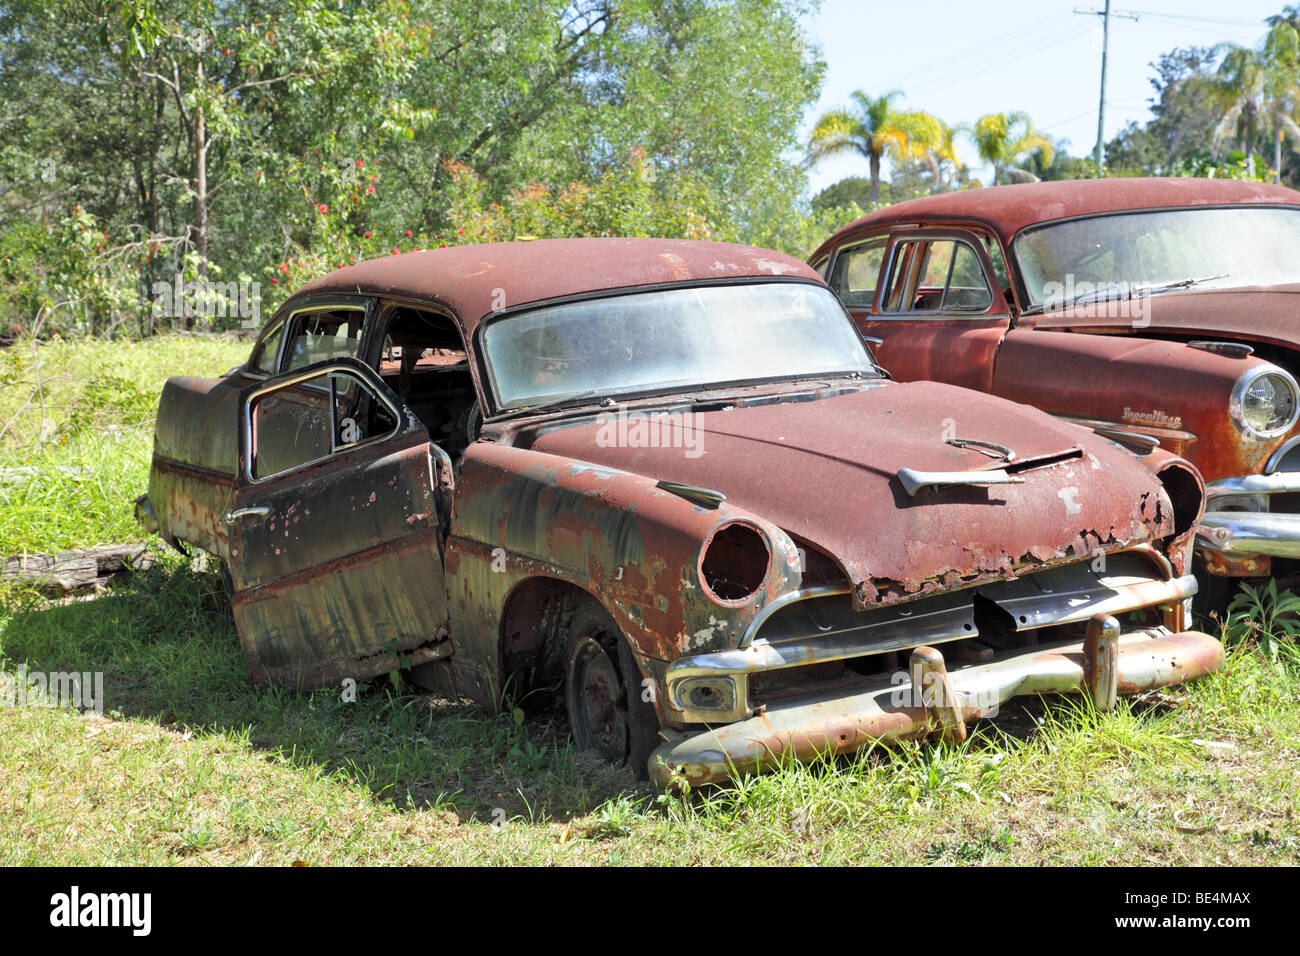 Rusted old cars in a grassy field Hudson vintage car Hudson Super ...